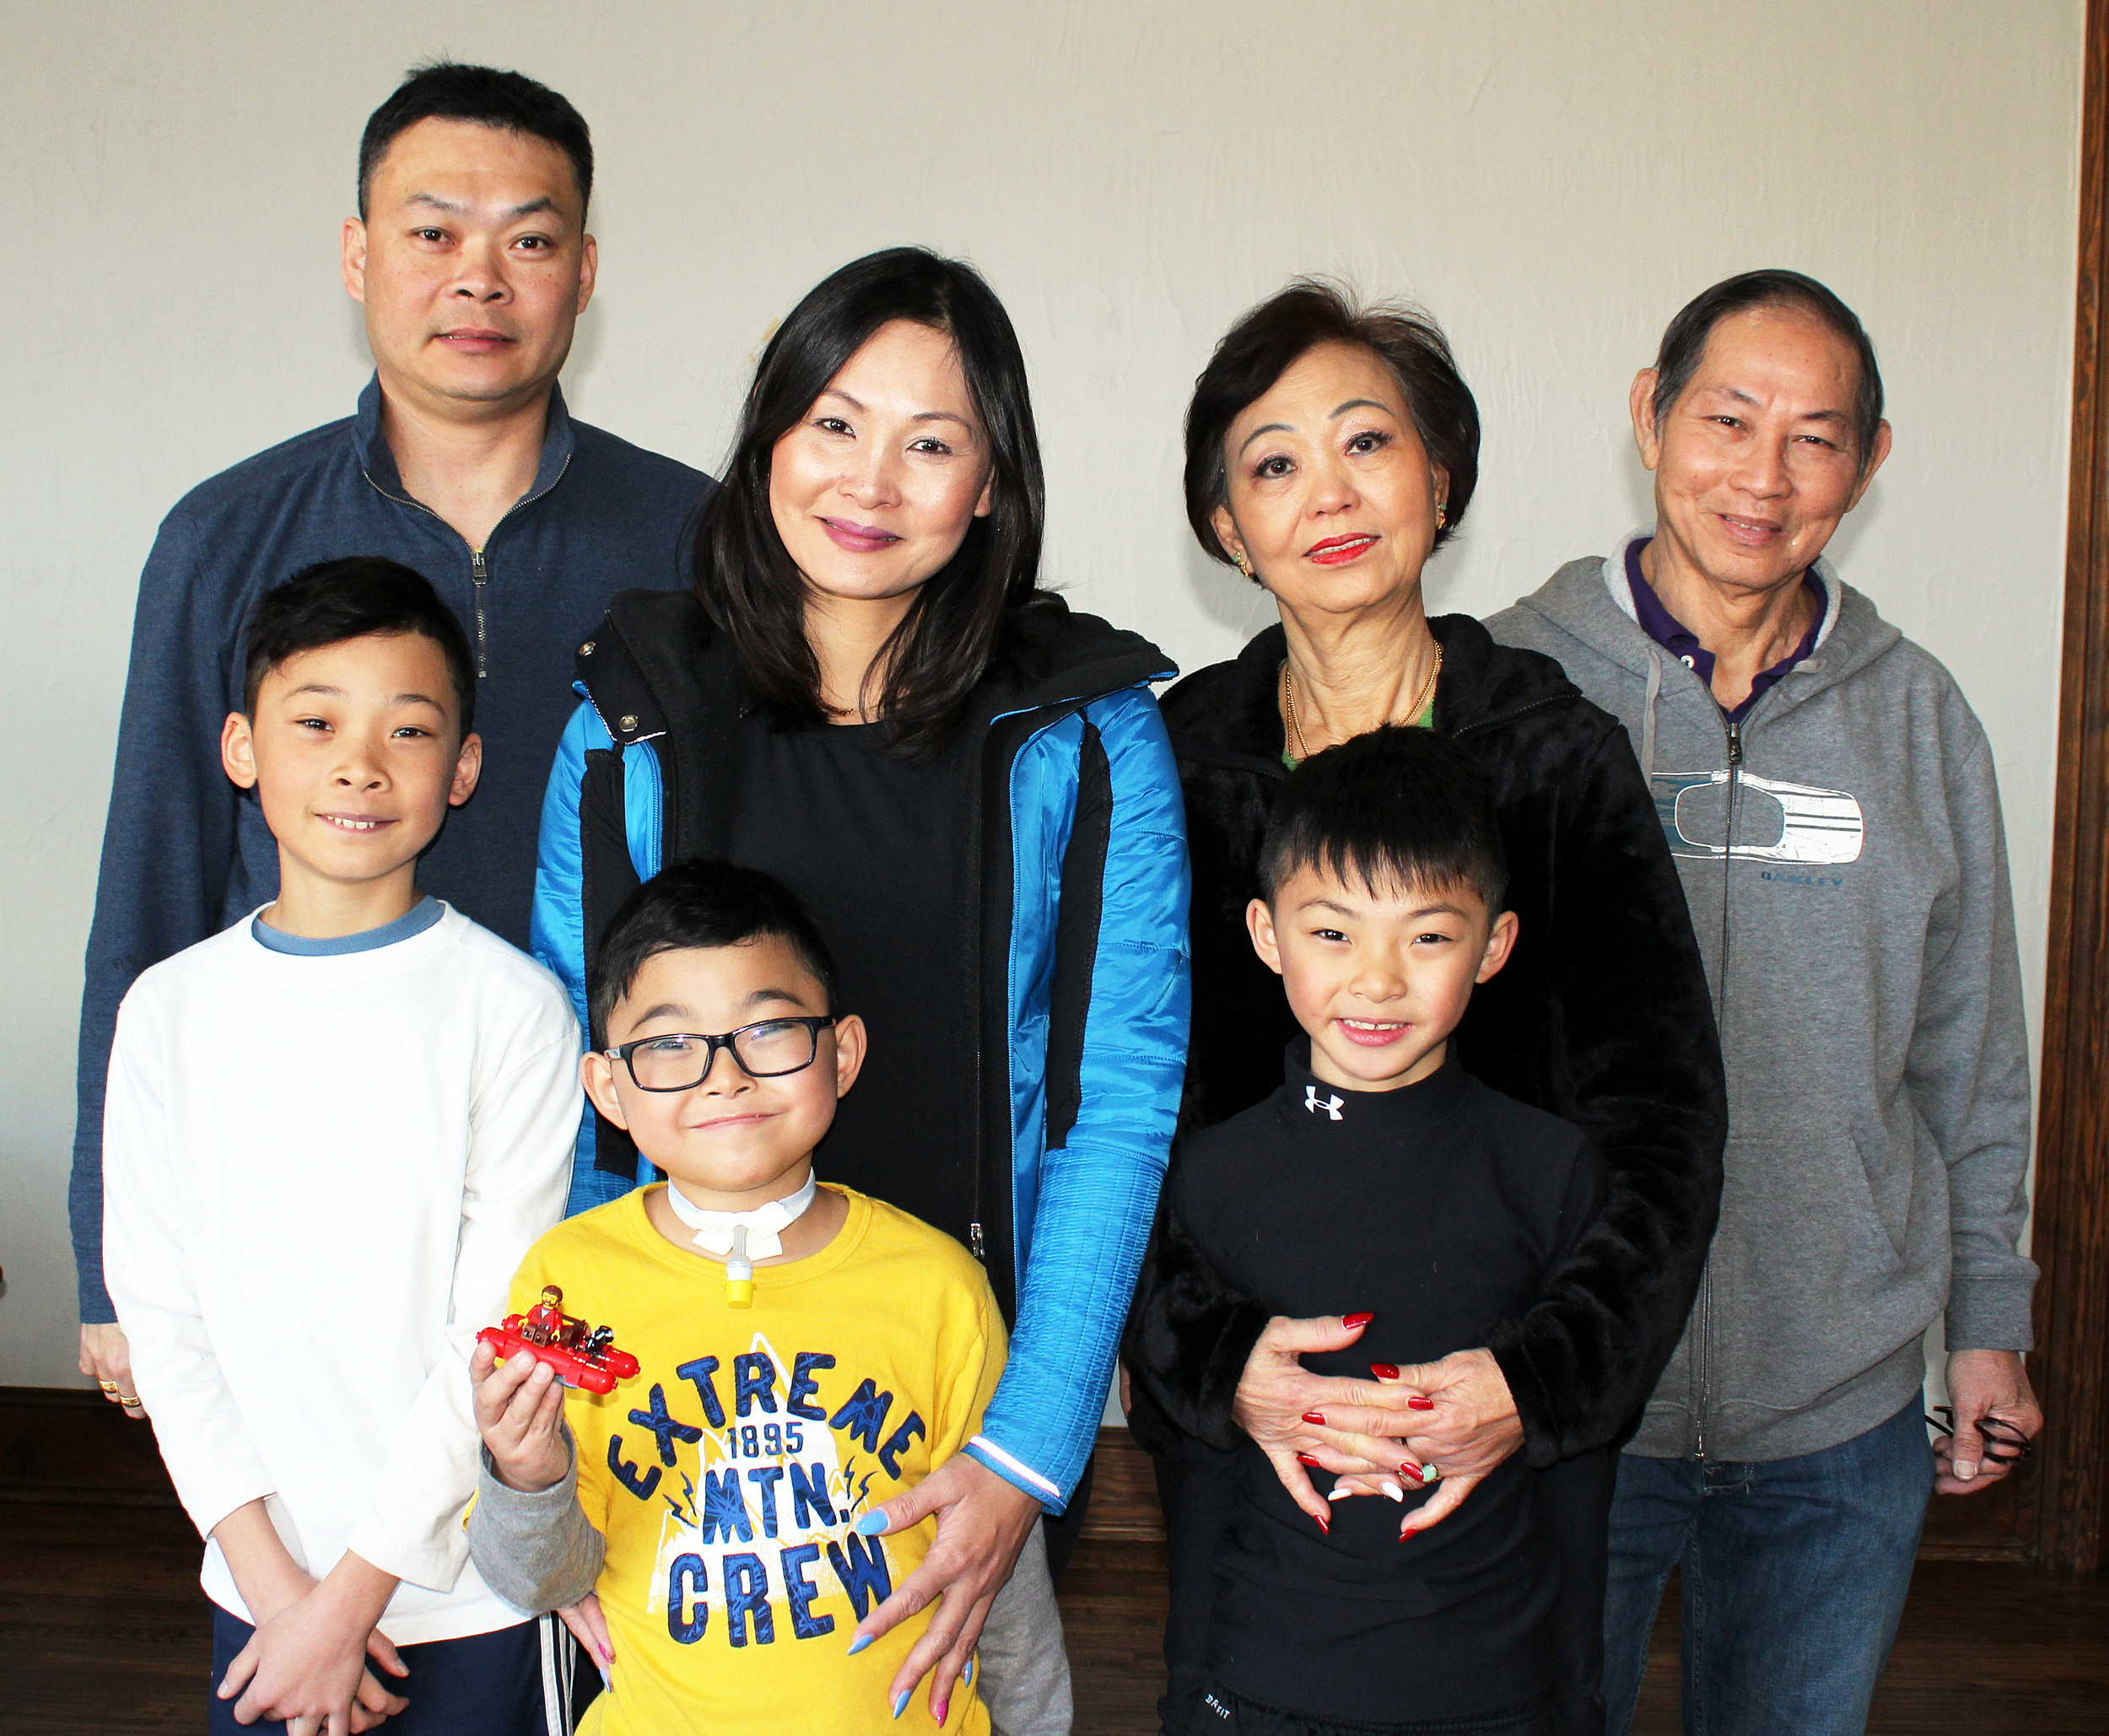 The Lim Family has lived in Fairview since 2016. (Front row, from left) Laynce Lim, 6th grader at Sloan Creek, Laynson Lim, 1st grader at Puster and Laynden Lim, 3rd grader at Puster. (Back row, from left) CJ Lim, Laura Lim with Laura's parents Rose Wan and John Wan.